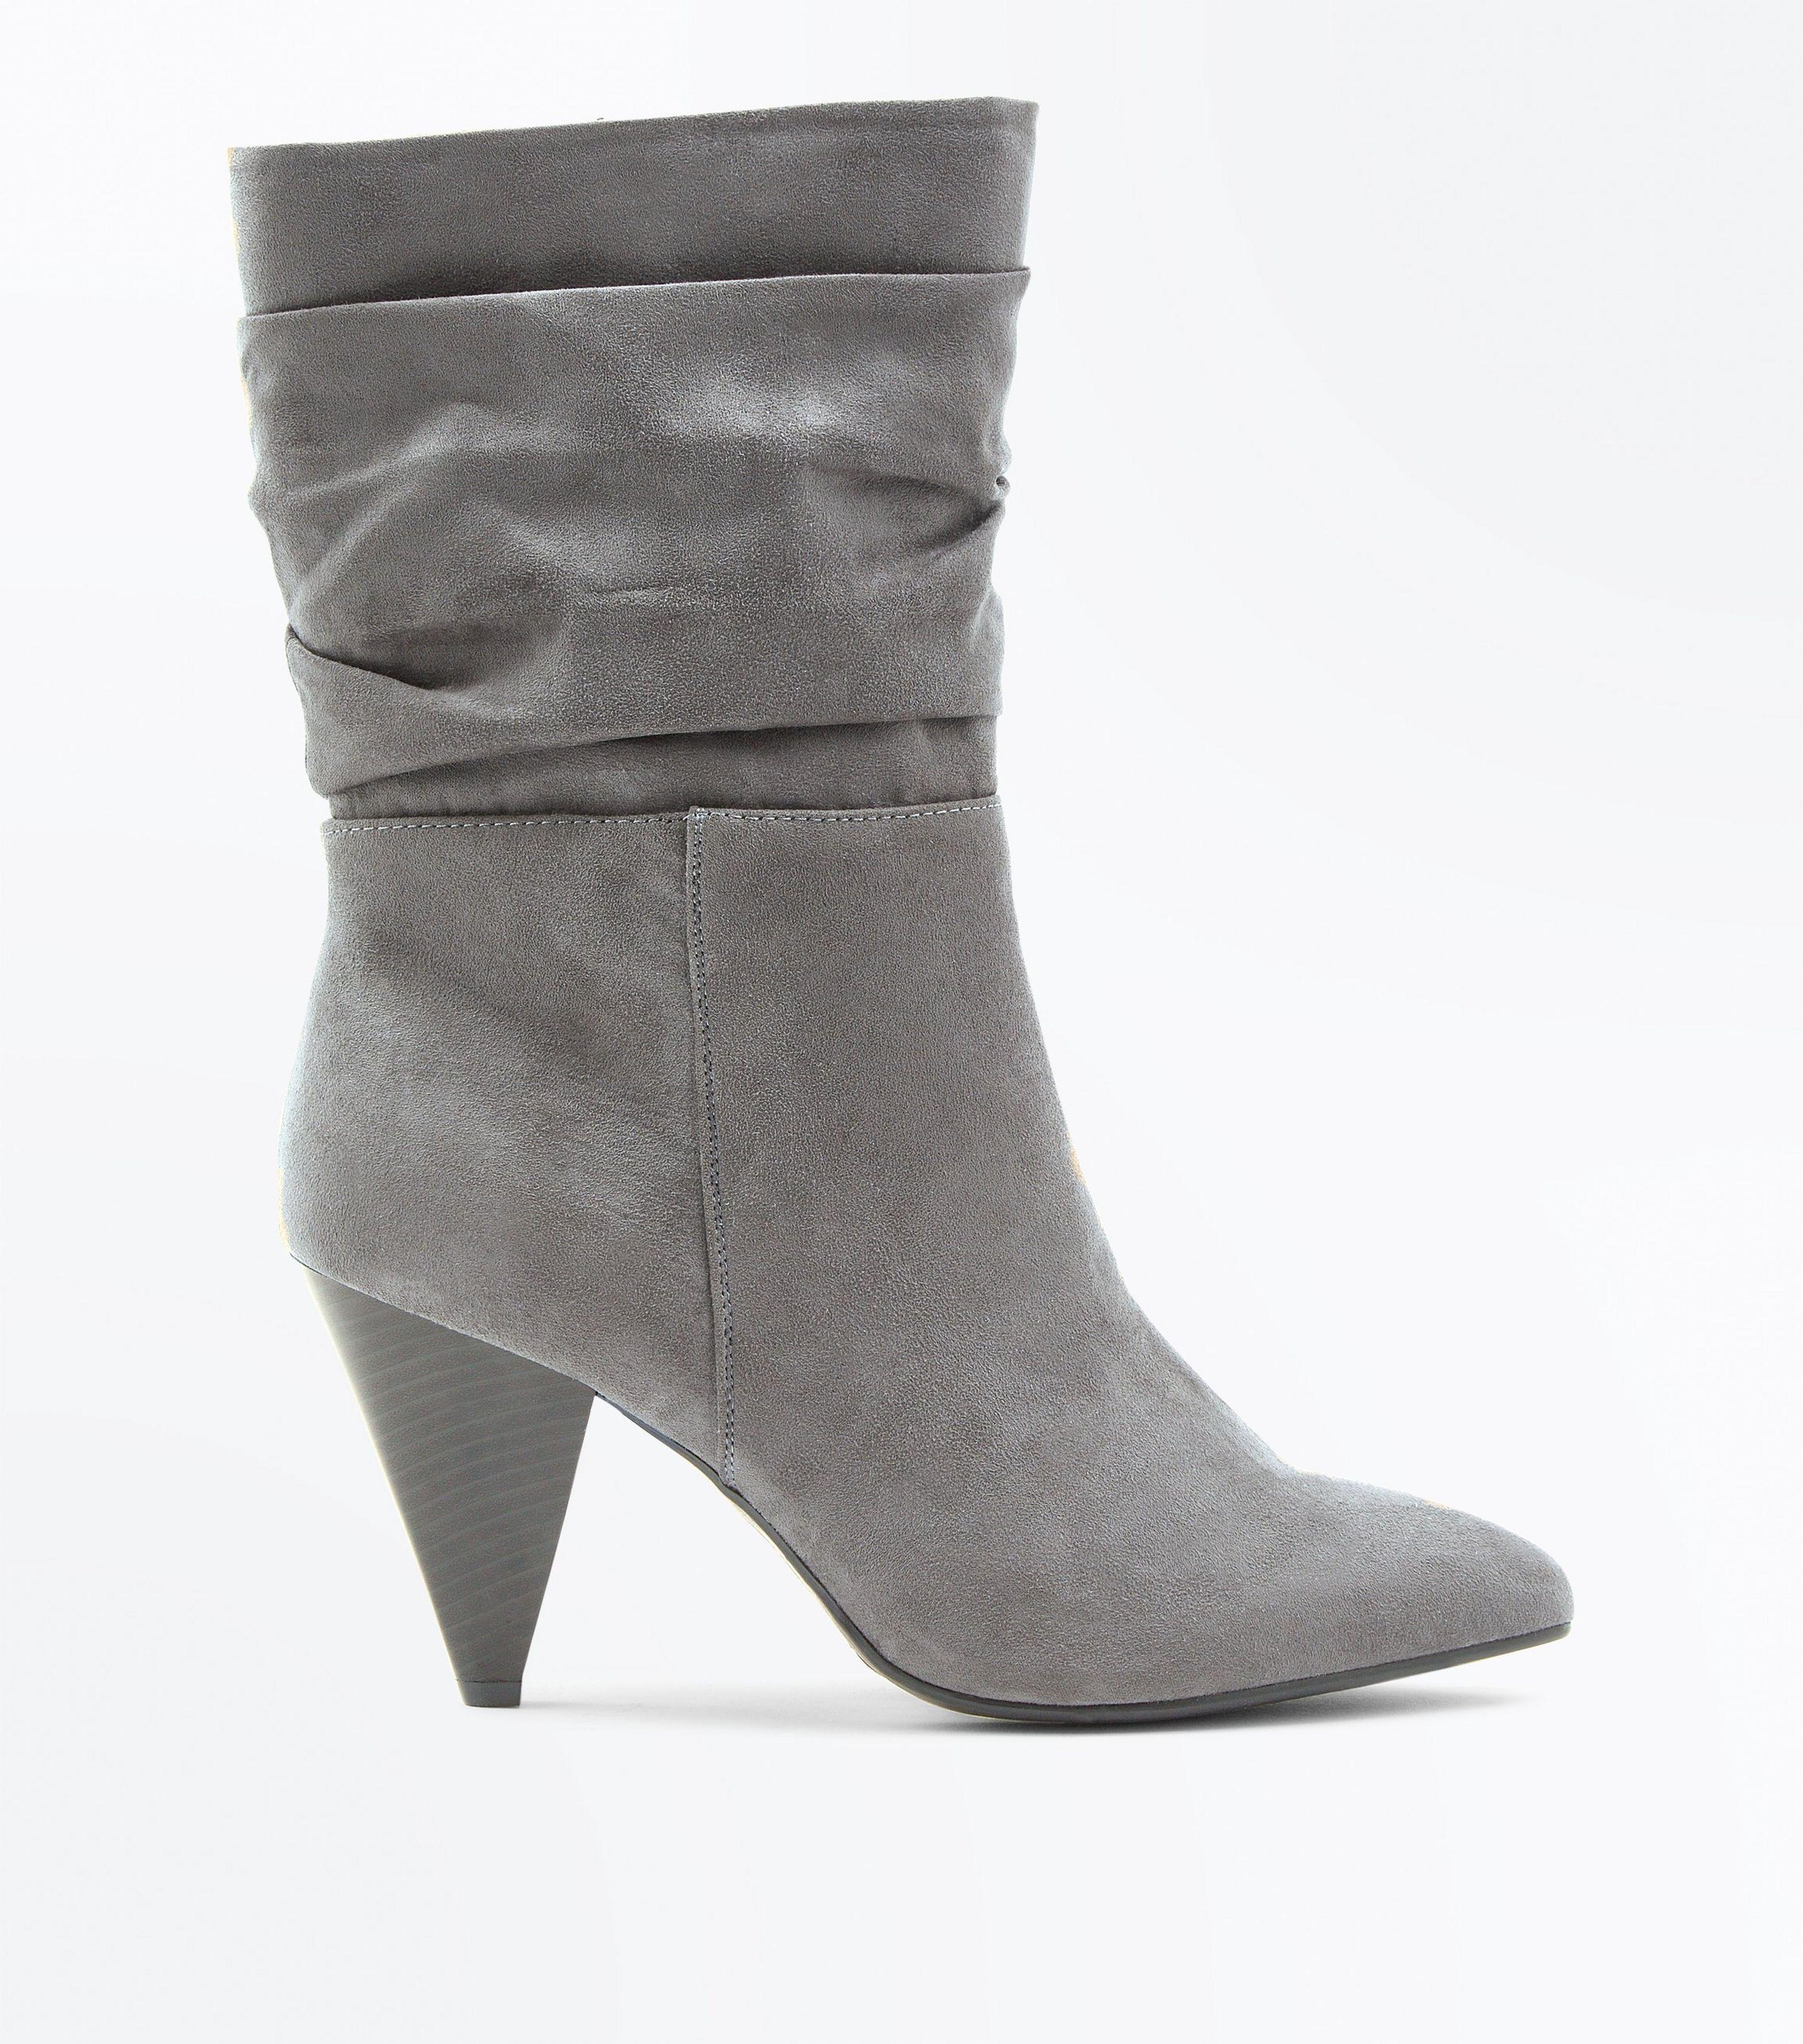 a3dbc716a89 New Look Gray Wide Fit Grey Suedette Cone Heel Calf Boots